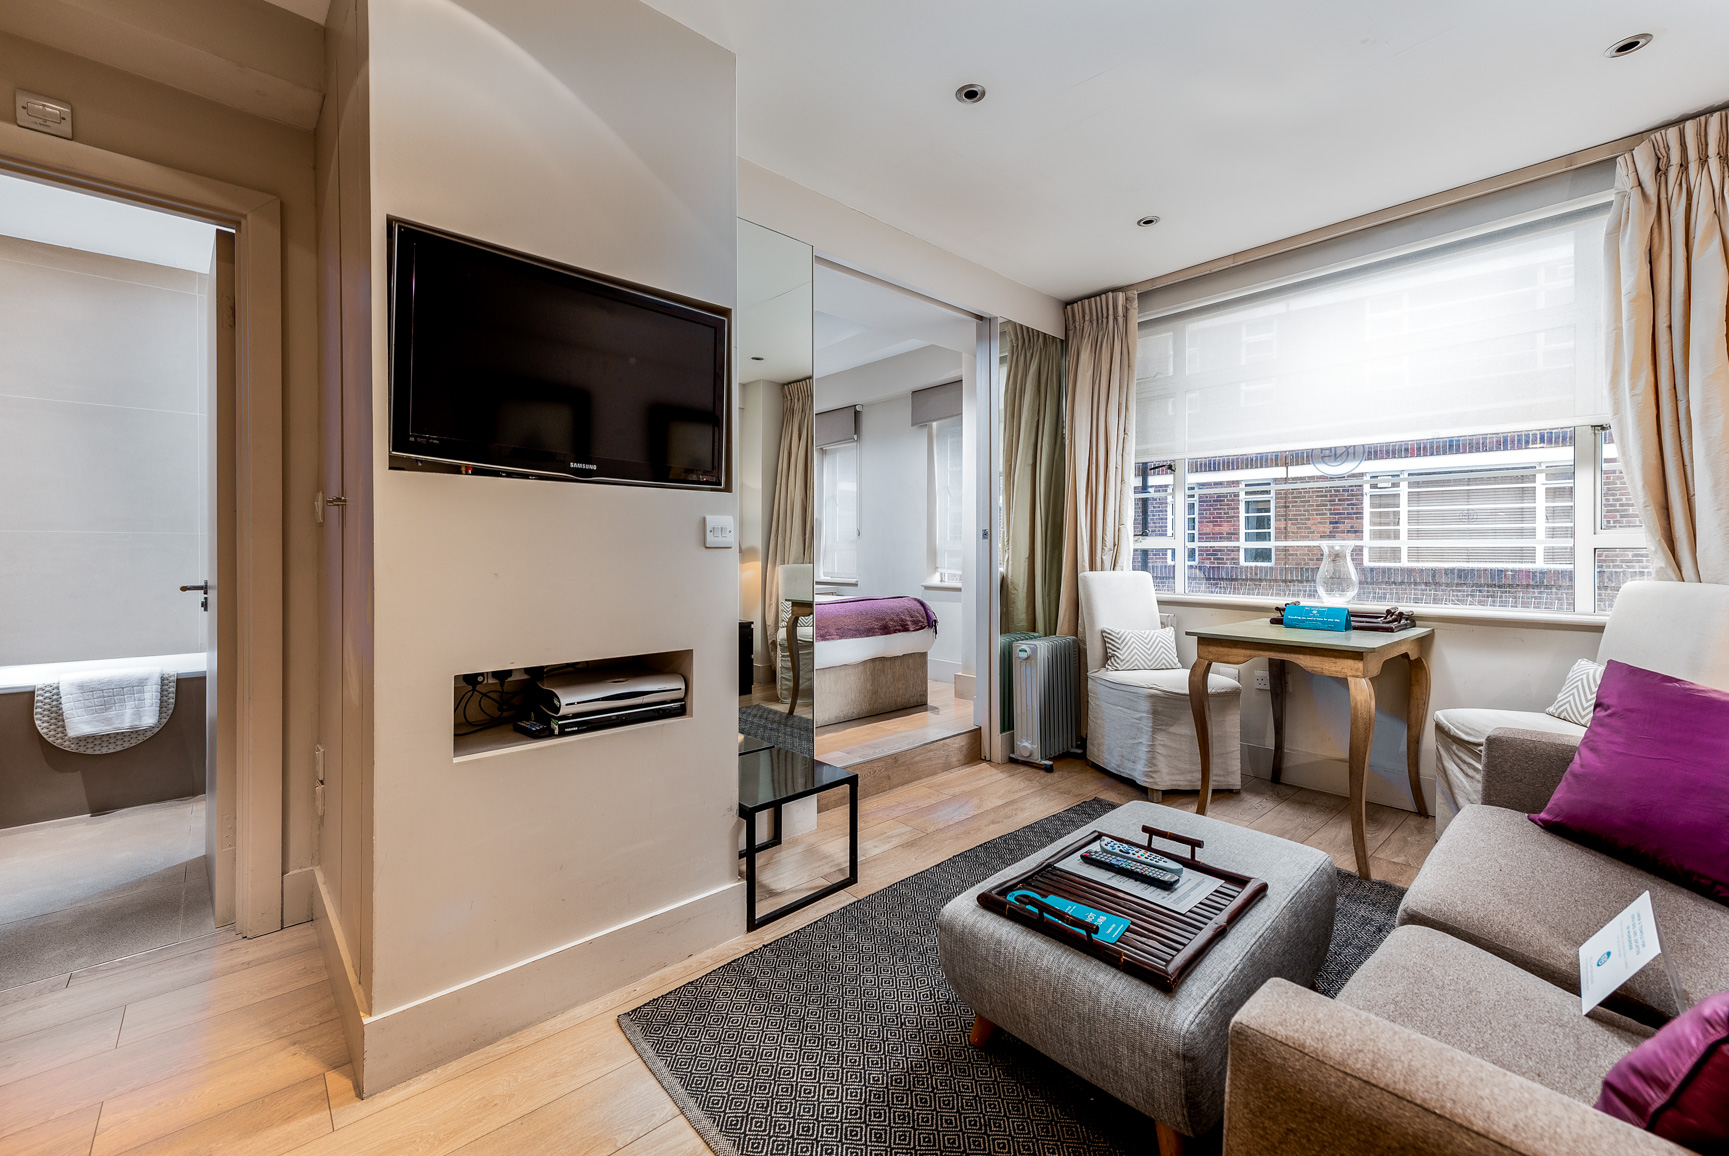 TV at Nell Gwynn House Accommodation, Chelsea, London